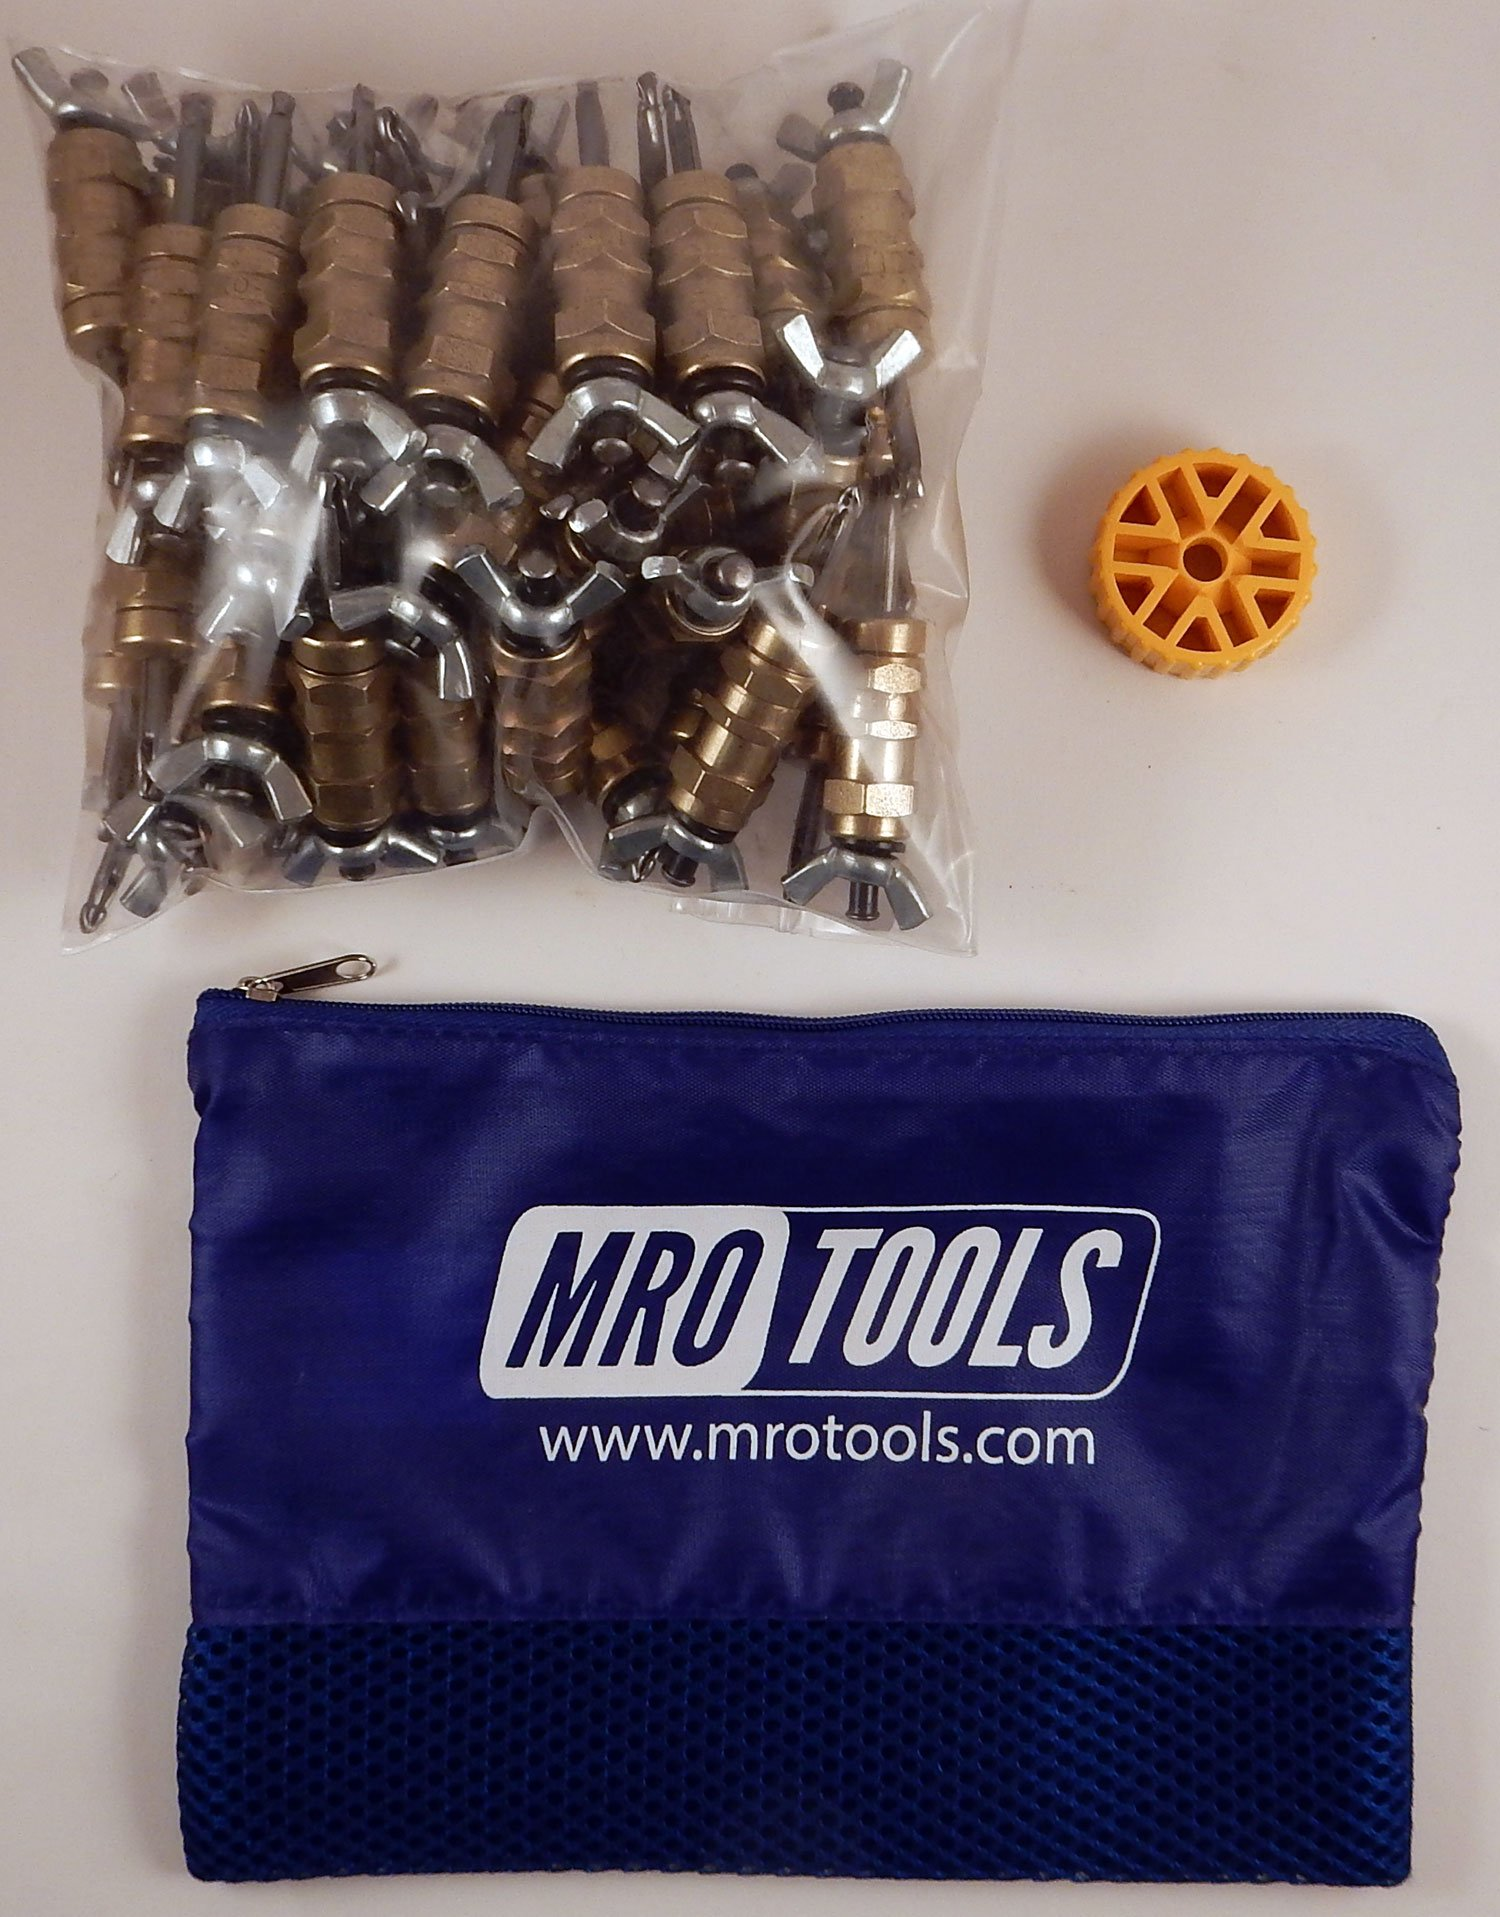 50 3/16 Standard Wing-Nut Cleco Fasteners w HBHT Tool & Carry Bag (KWN1S50-3/16)